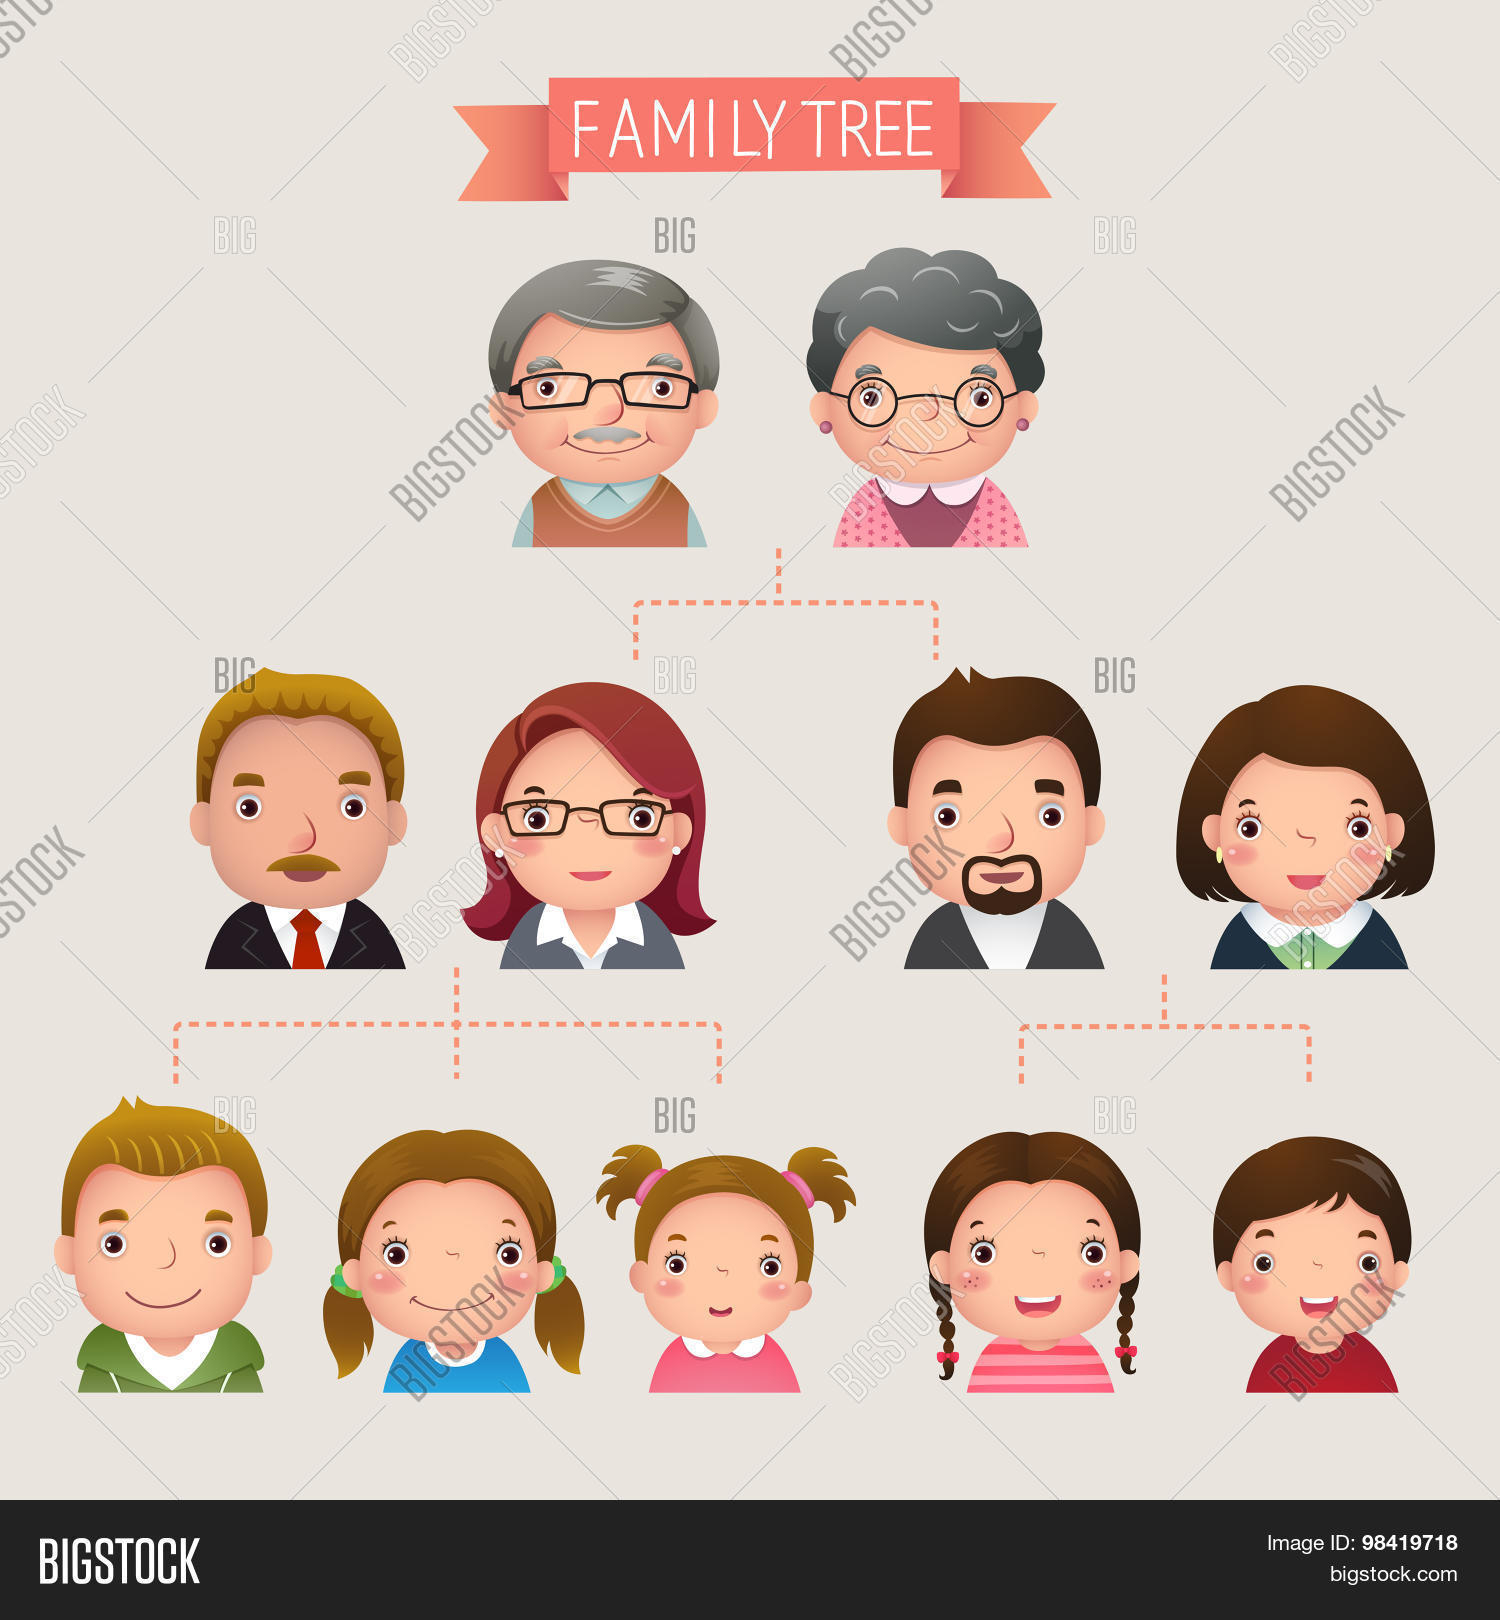 Cartoon Vector Illustration Of Family Tree Image Stock Photo 98419718 Arecaceae plant leaf palm branch, potted green plants, green leafed plant and white plant pot, plant stem, green apple, plants png. cartoon vector illustration of family